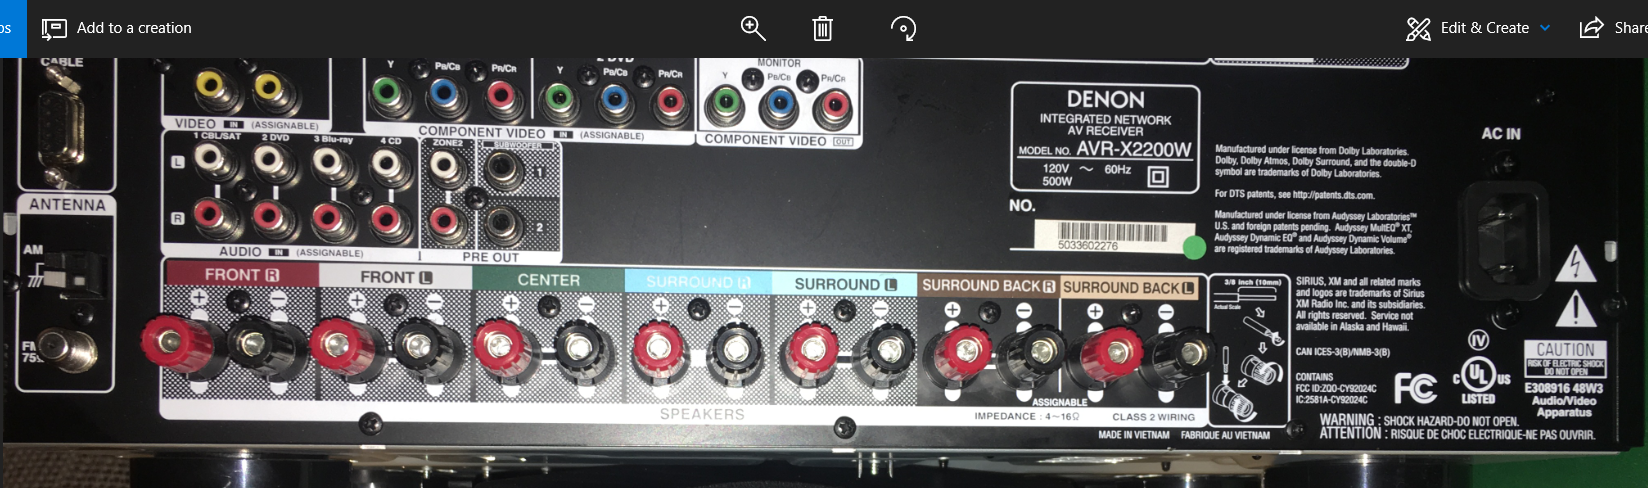 I Am Trying To Set Up 4 Atmos Speakers With My Denon Avr X2200w But X3300w Backvdenon A